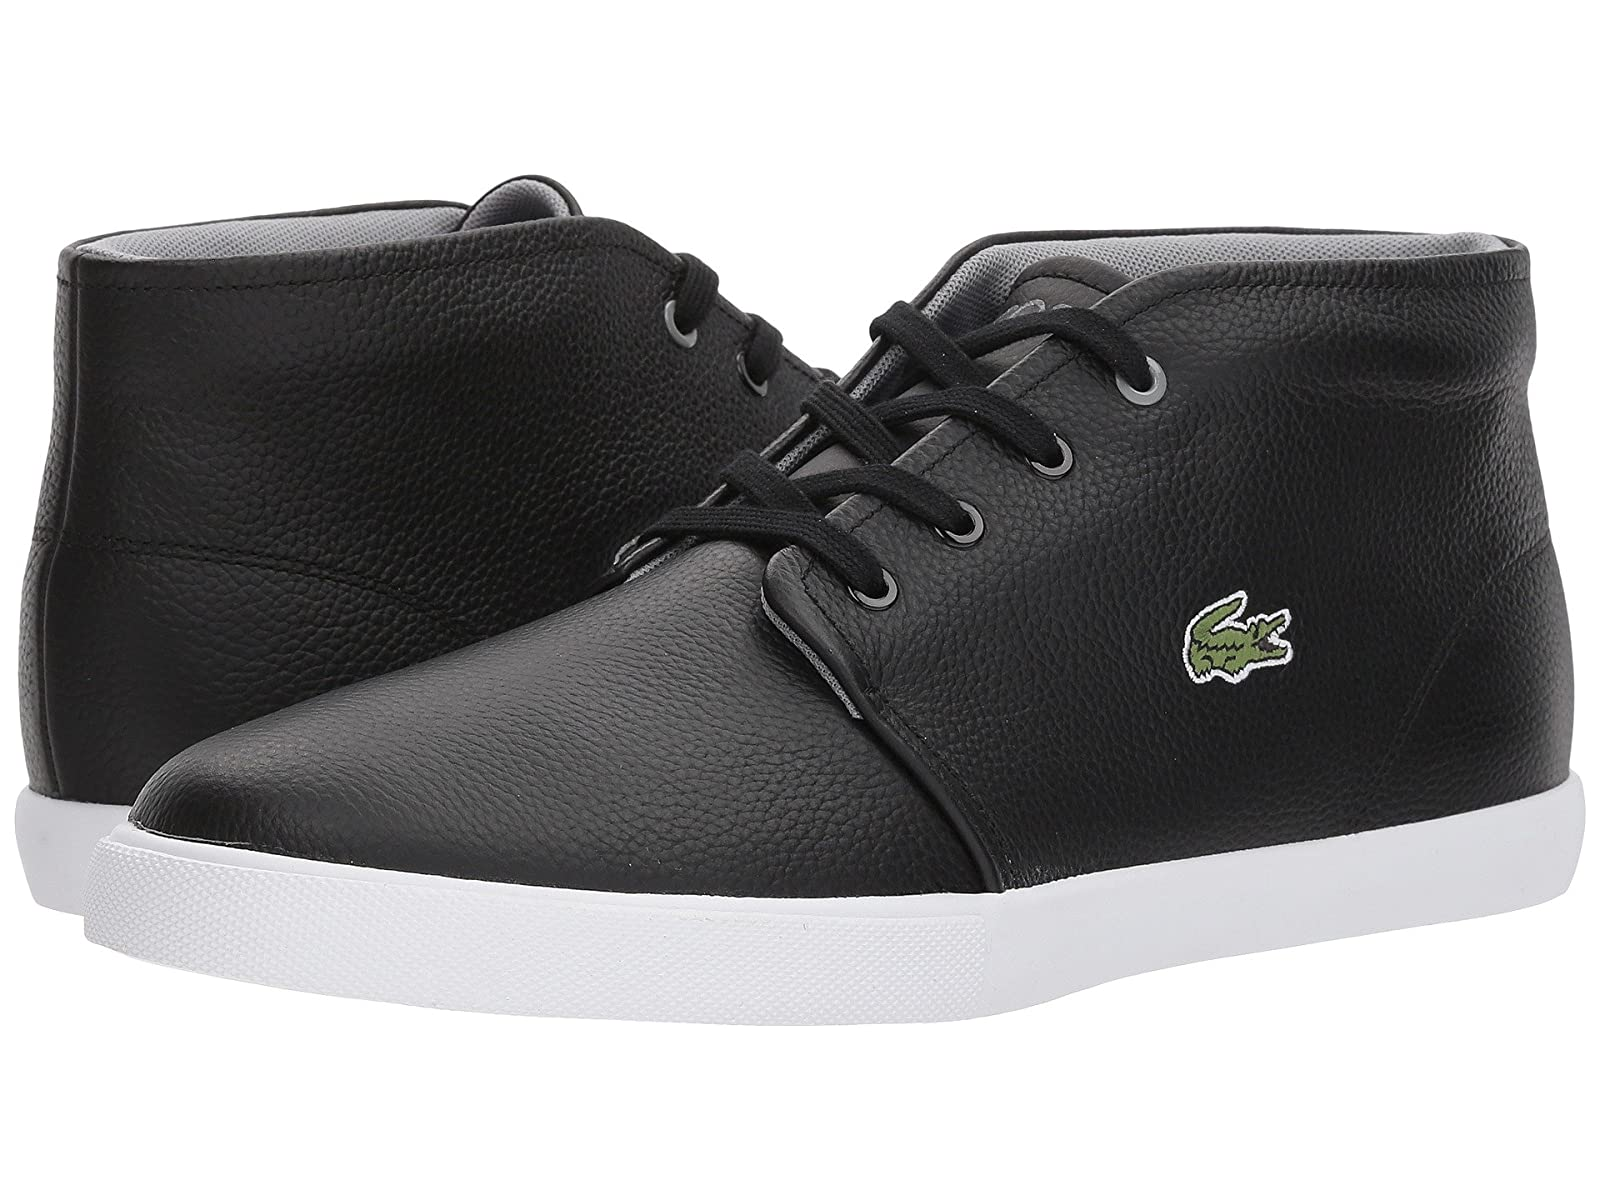 Lacoste Asparta 118 1 PCheap and distinctive eye-catching shoes